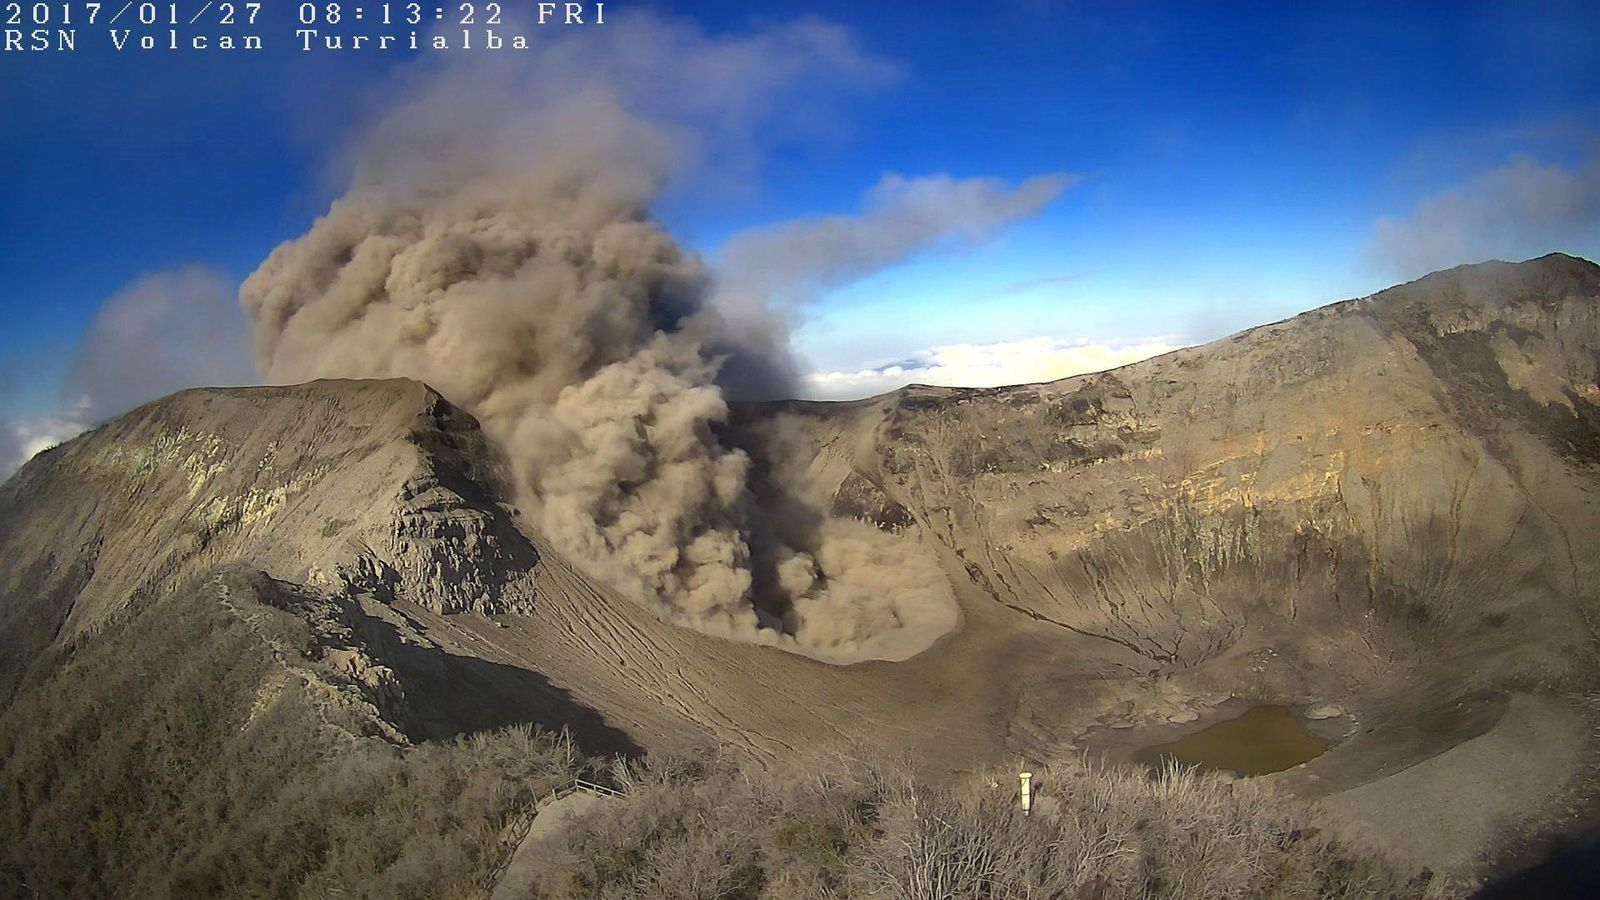 Turrialba - 27.01.2017 / 8h13 - webcam RSN